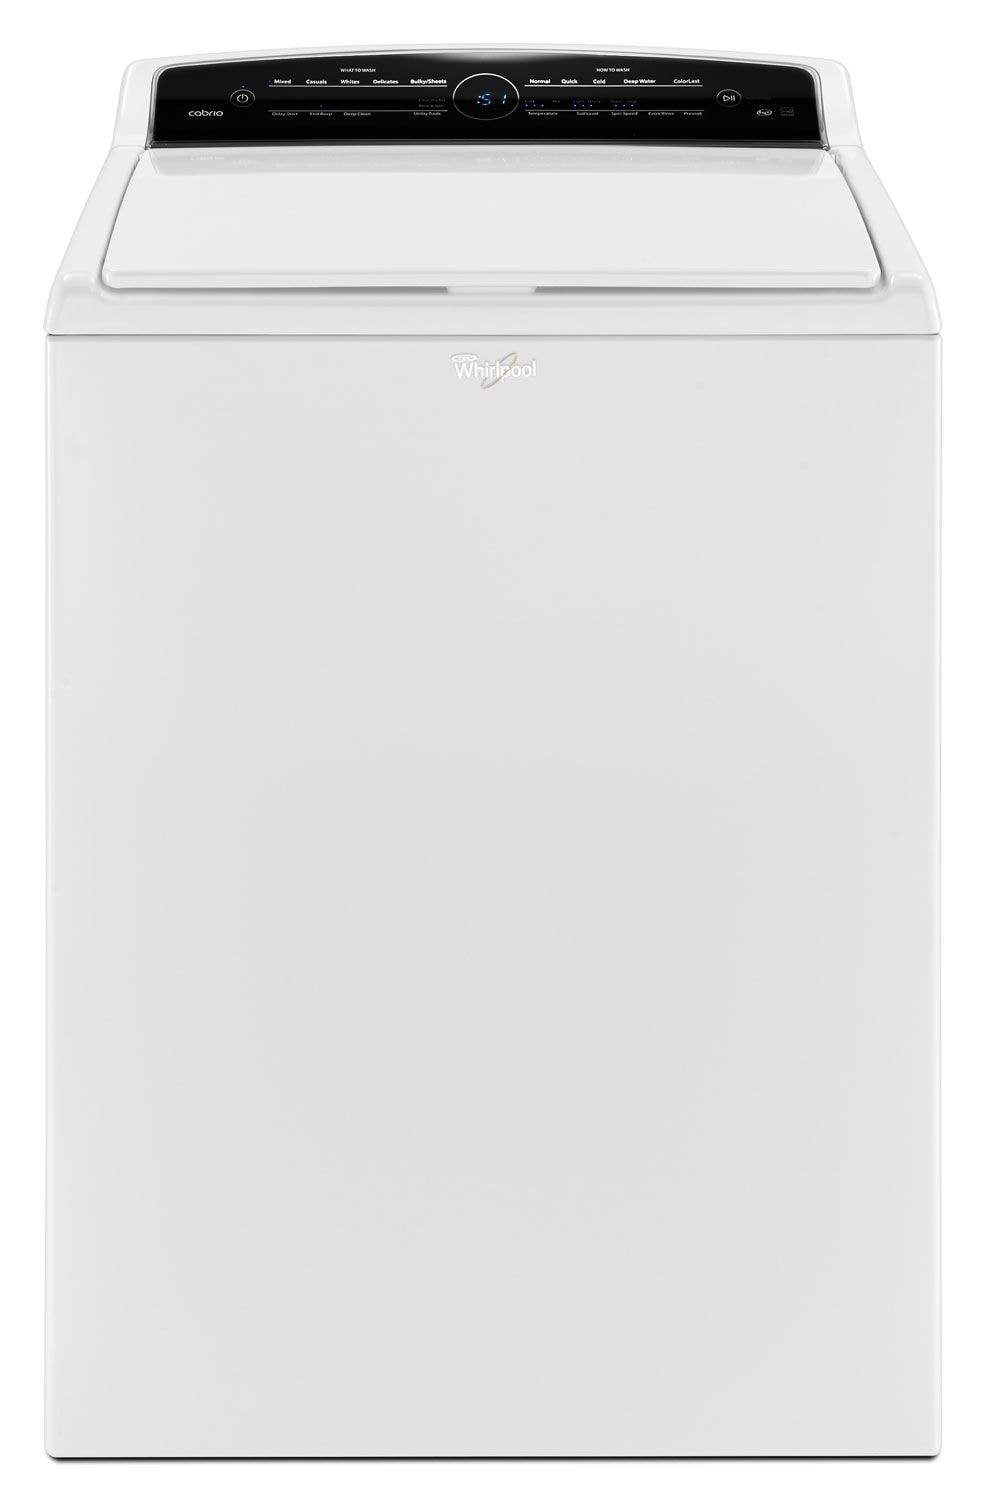 Whirlpool White Top-Load Washer (5.5 Cu. Ft. IEC) - WTW7000DW